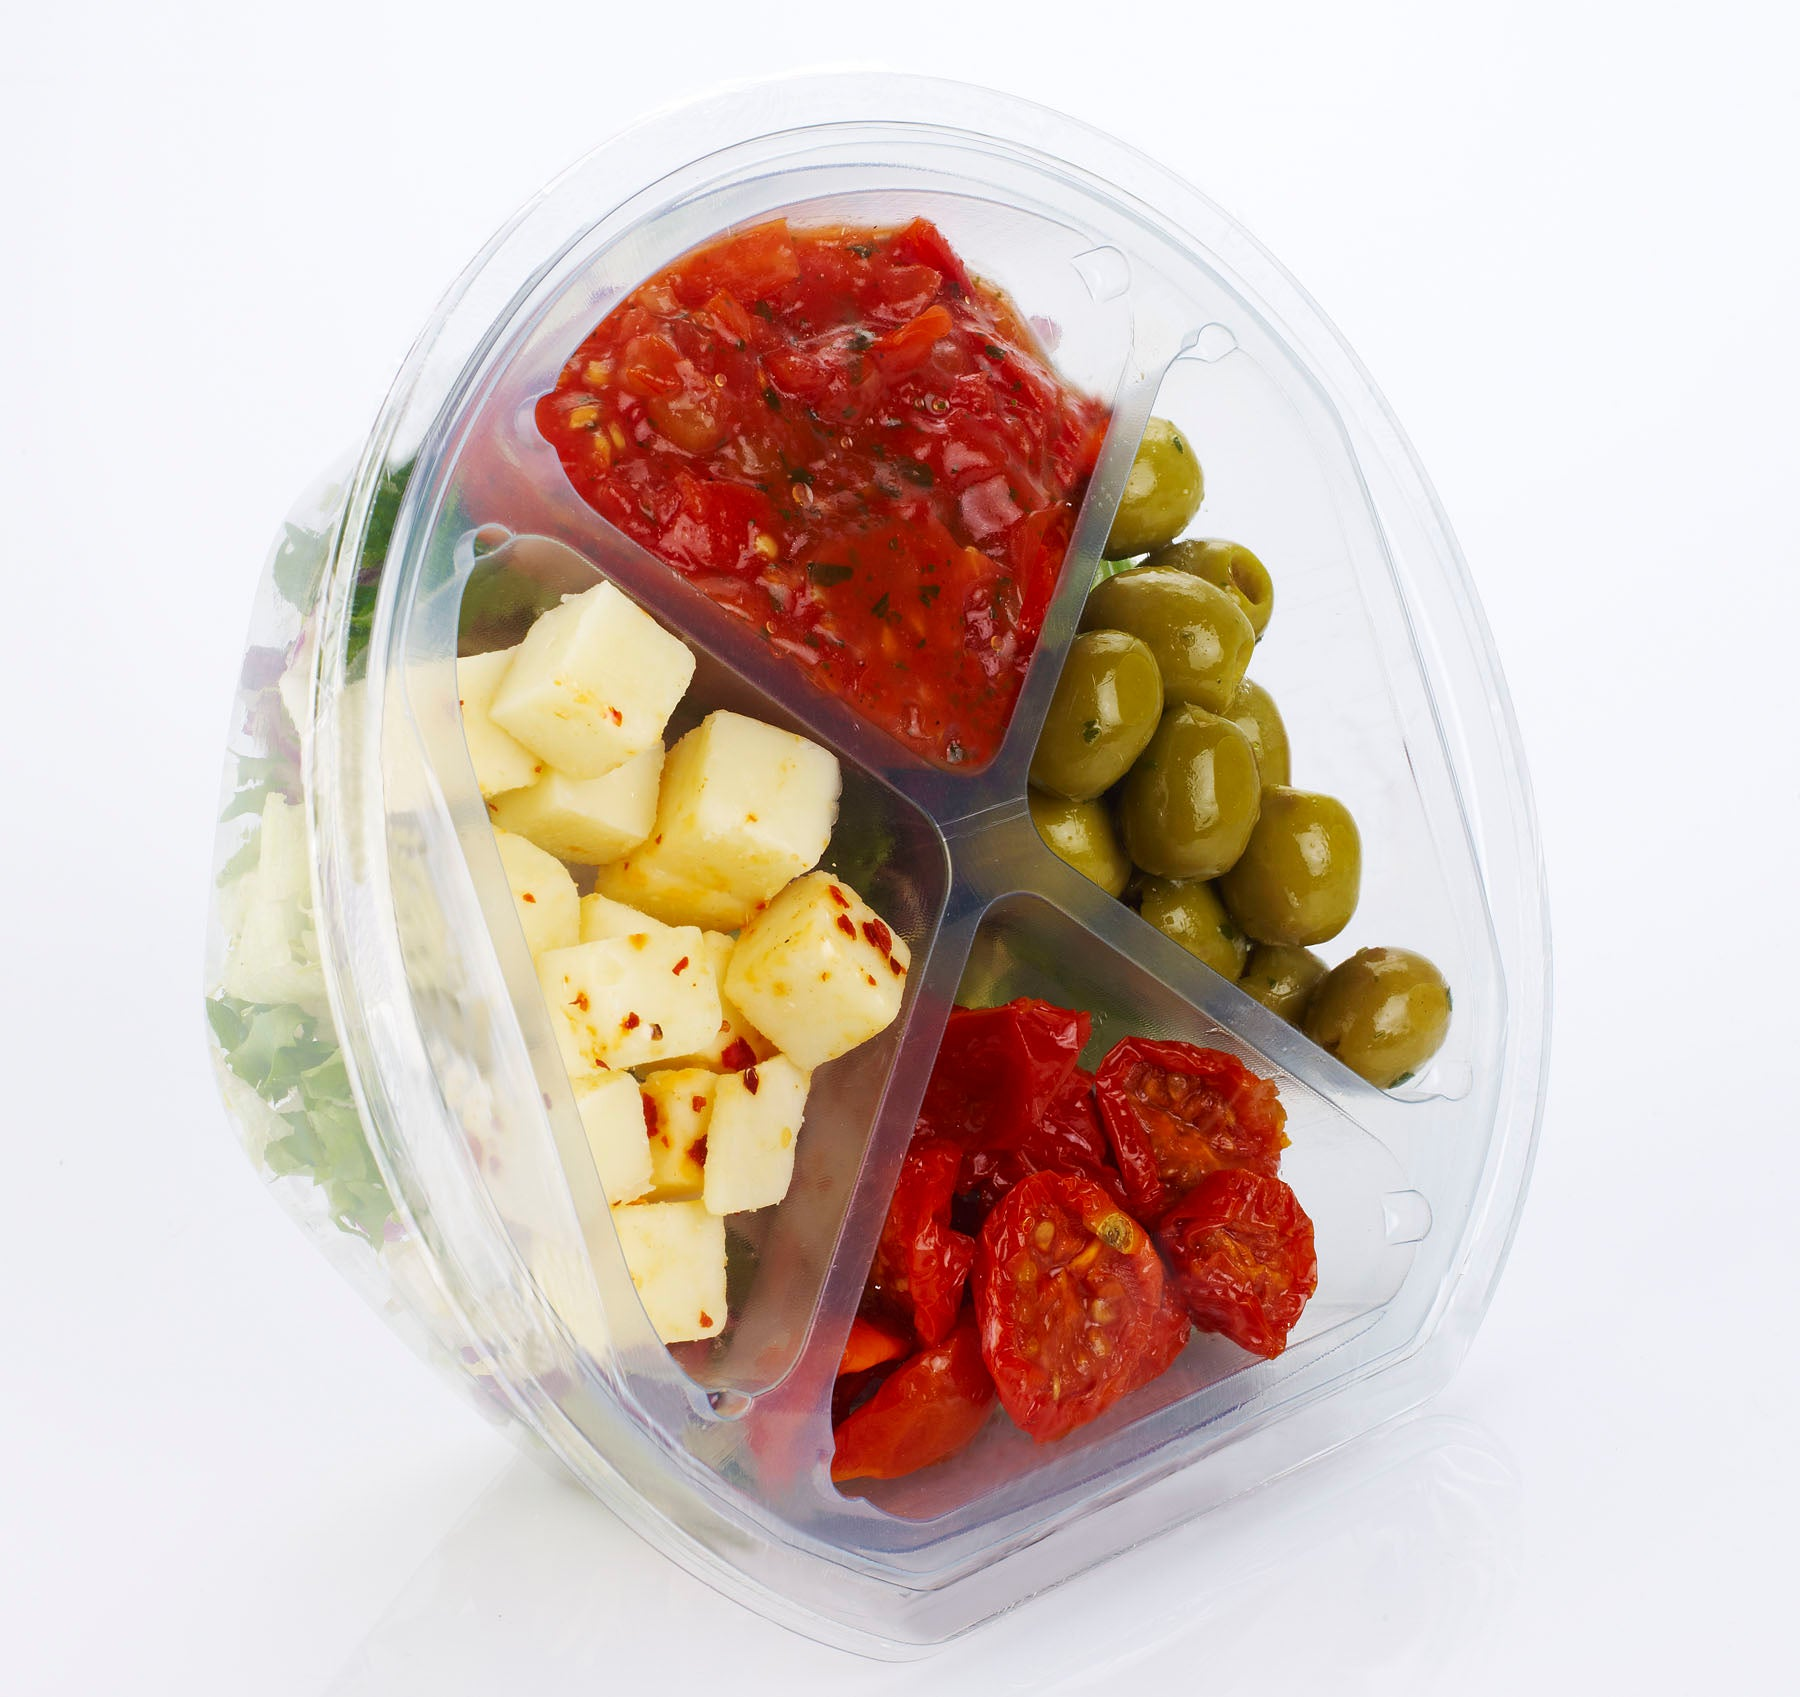 salad container with different compartments